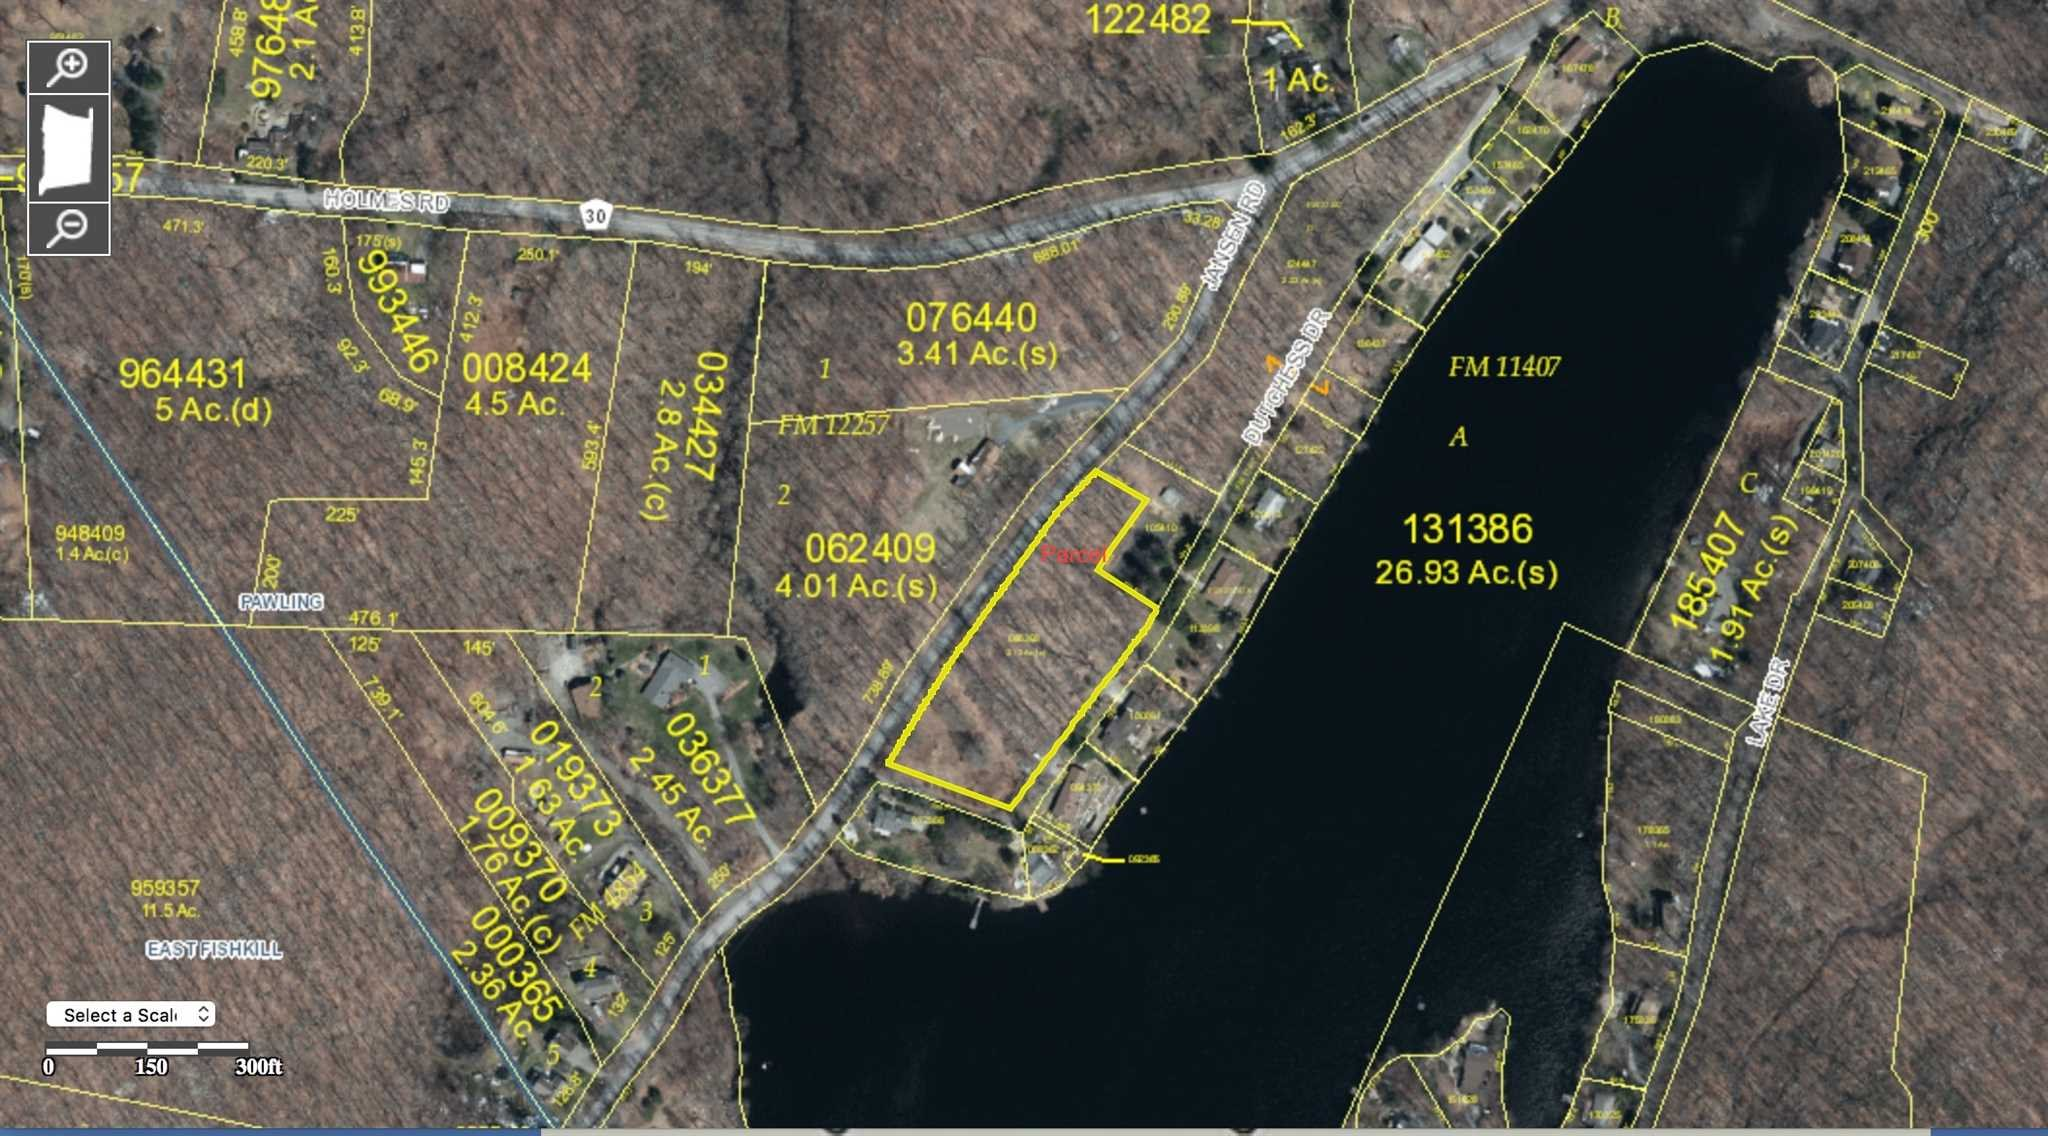 Land for Sale at DUTCHESS Drive DUTCHESS Drive Pawling, New York 12531 United States